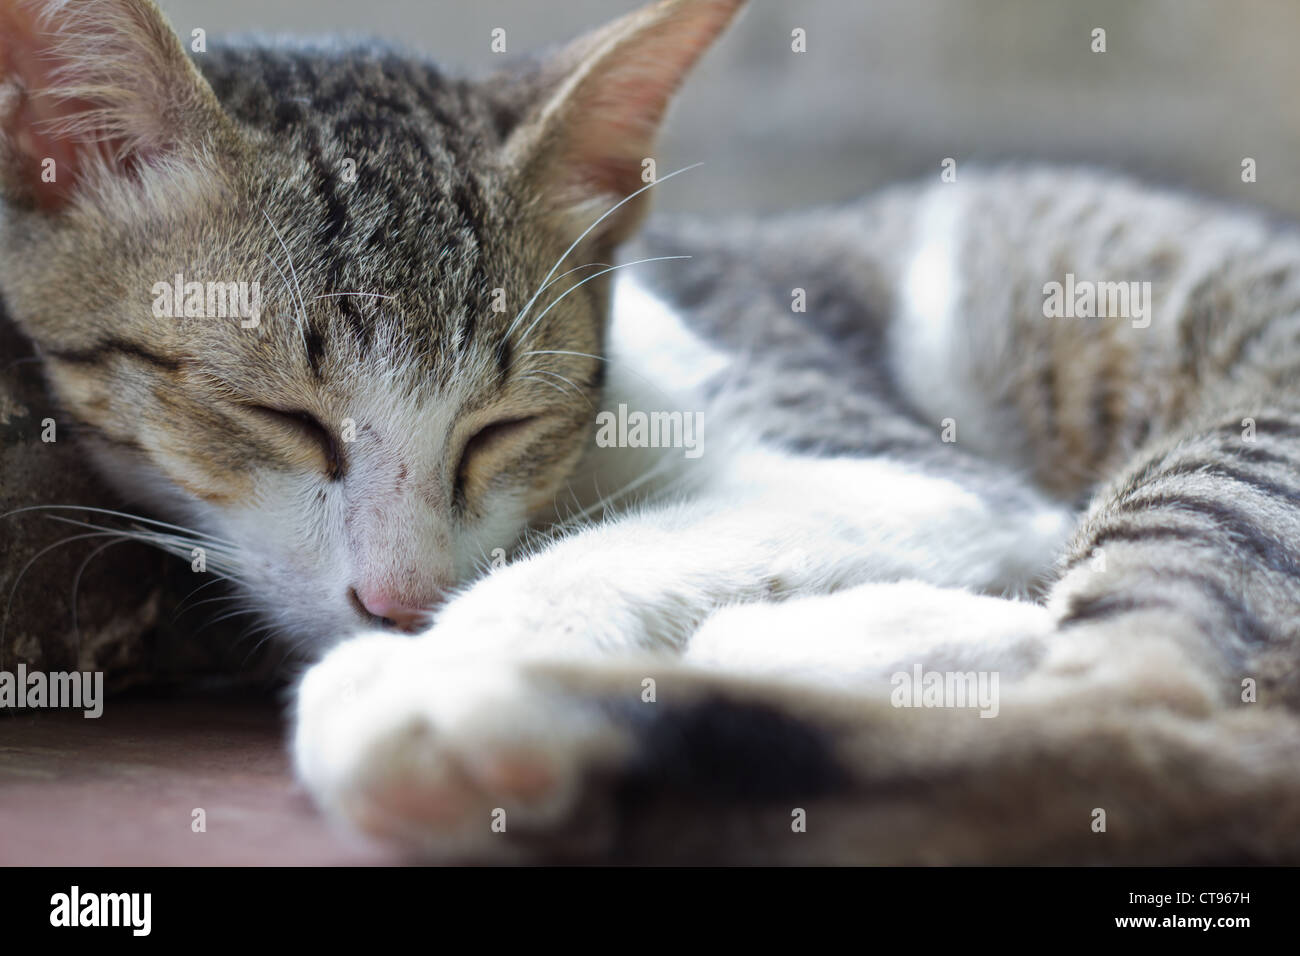 Adorable Young Cat while sleeping. - Stock Image